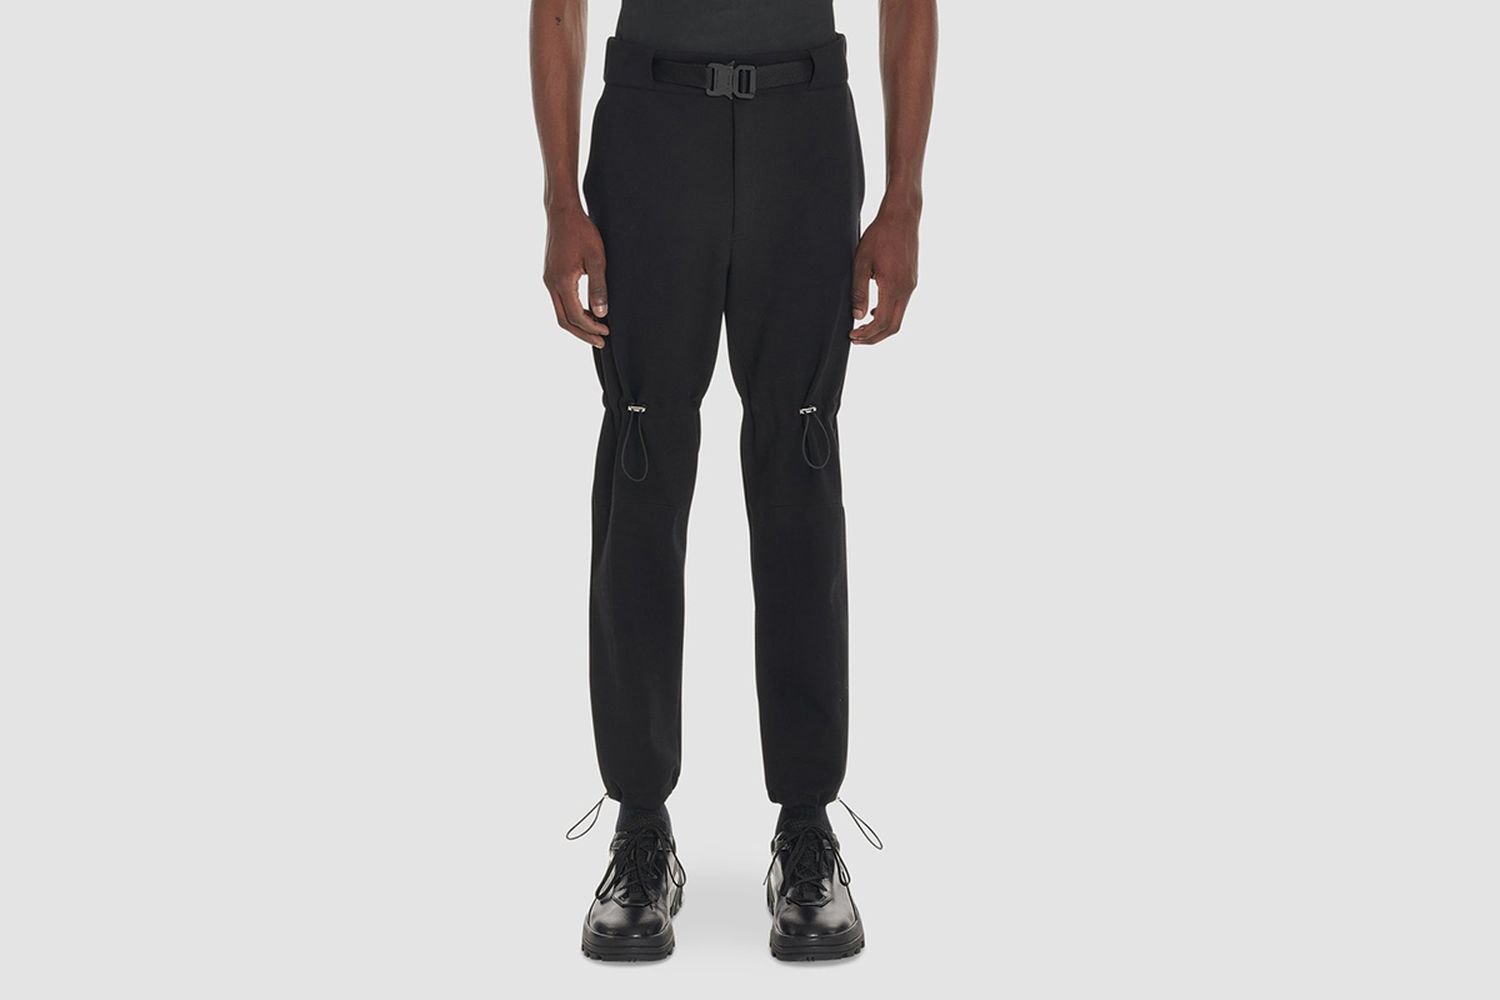 Gaiter Pant With Buckle